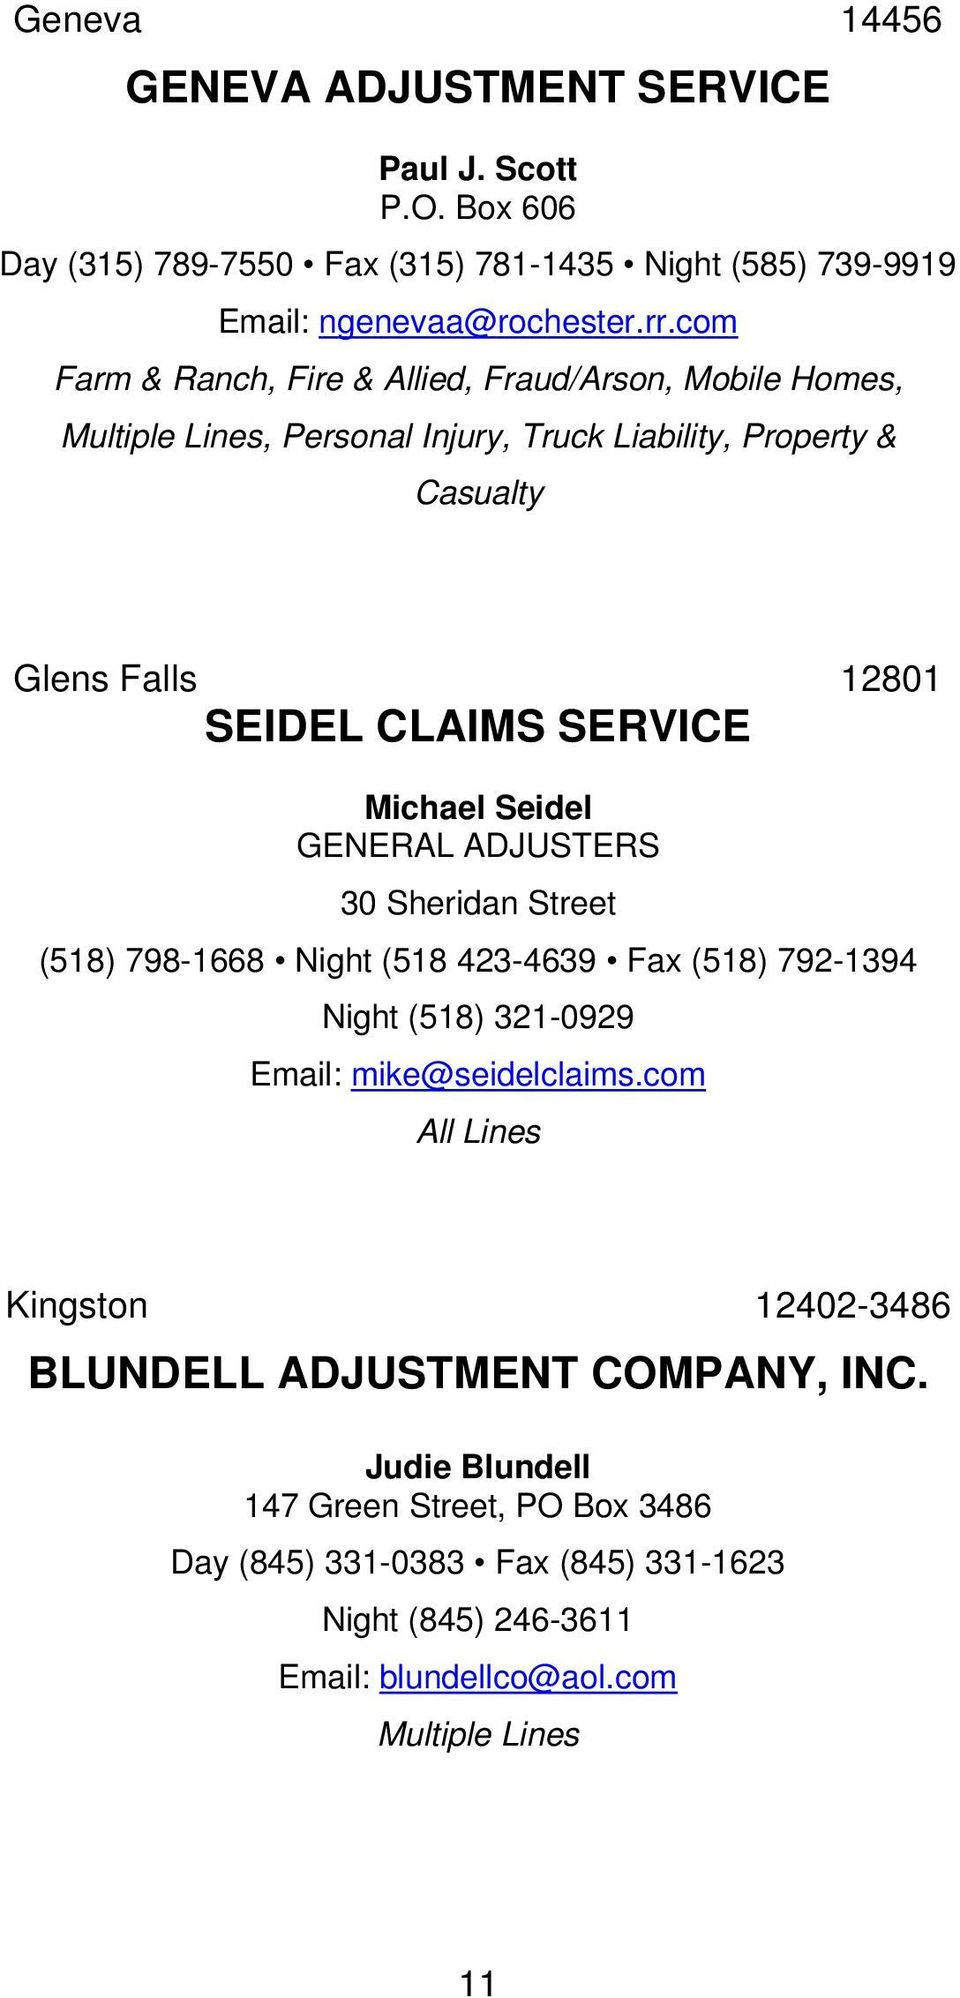 Michael Seidel GENERAL ADJUSTERS 30 Sheridan Street (518) 798-1668 Night (518 423-4639 Fax (518) 792-1394 Night (518) 321-0929 Email: mike@seidelclaims.